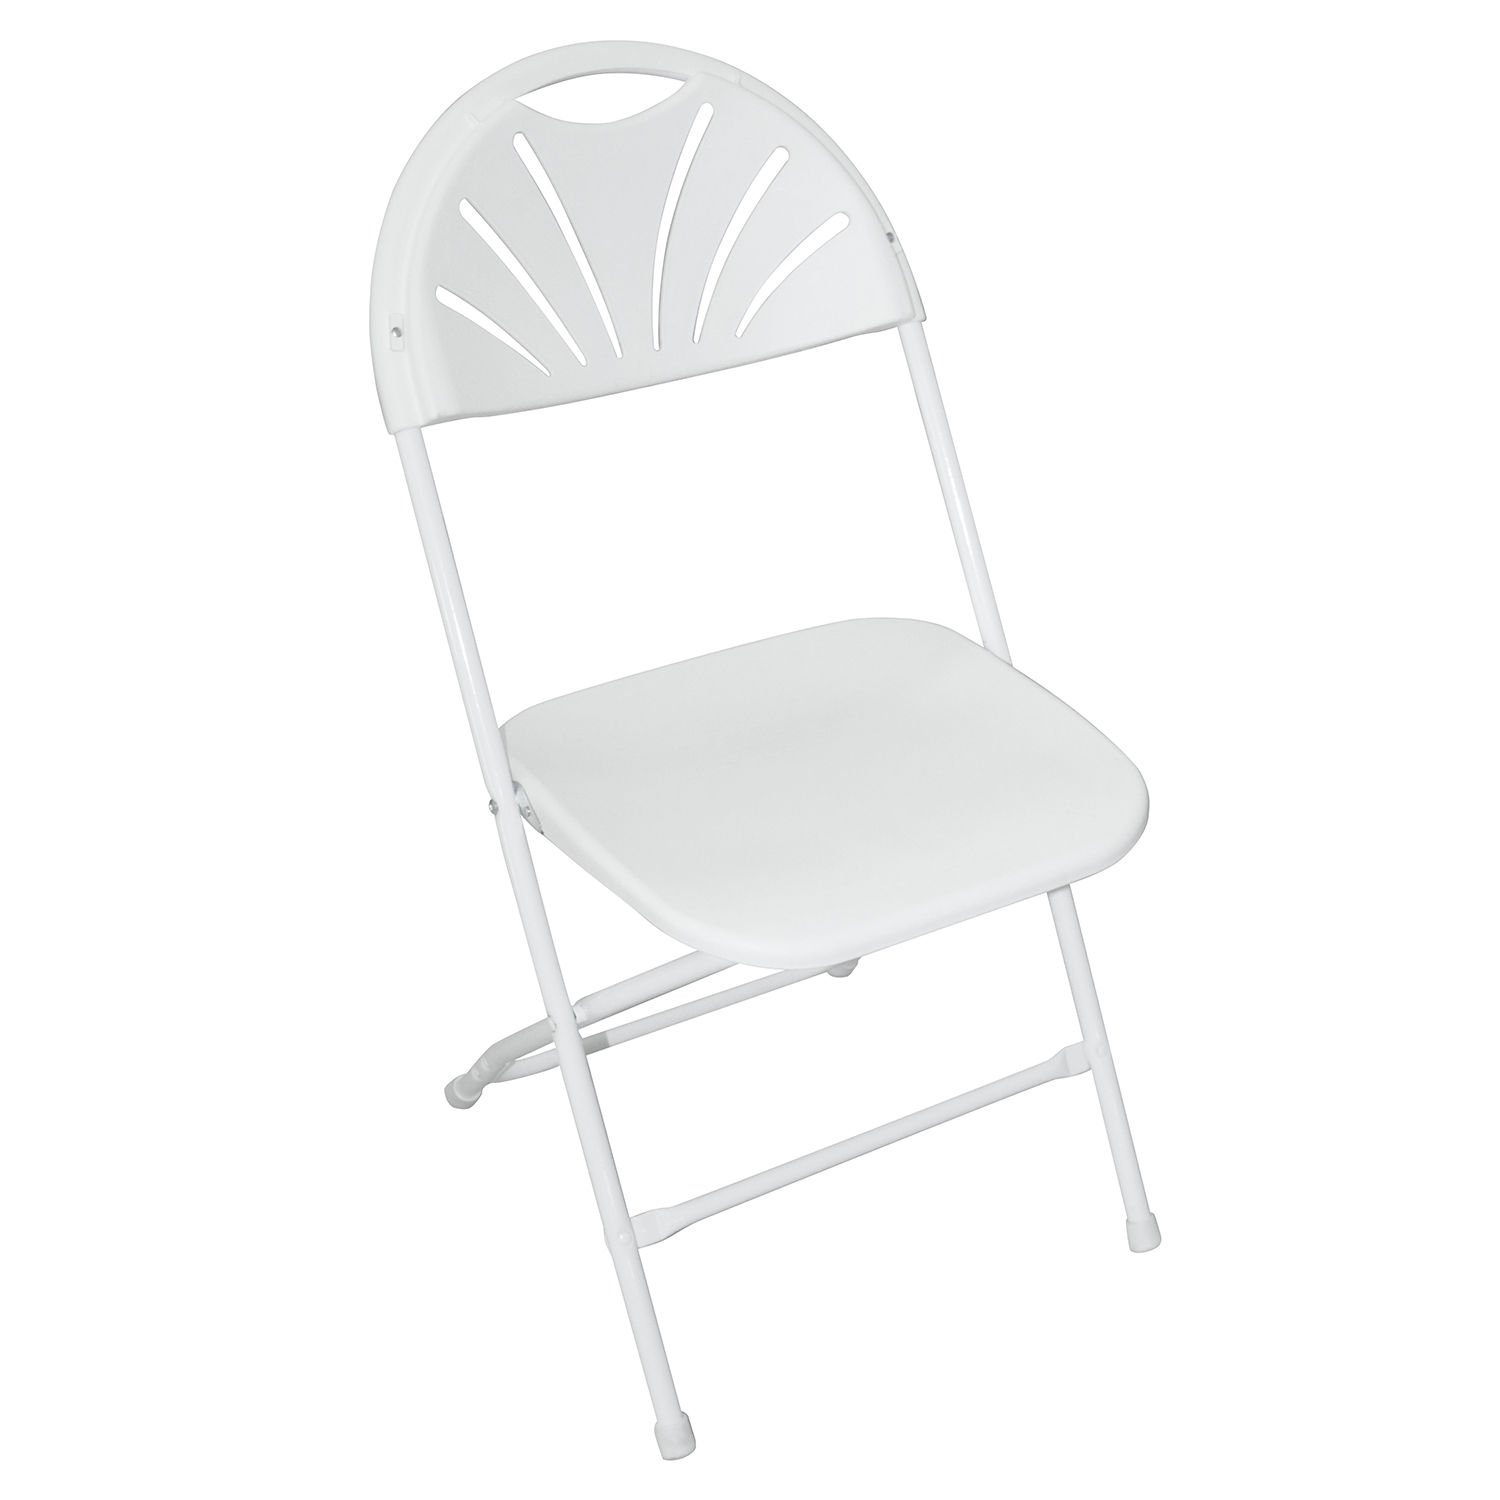 New 8PCS Sitting Chair Home School Class Study Wedding Foldable Molded Seat White